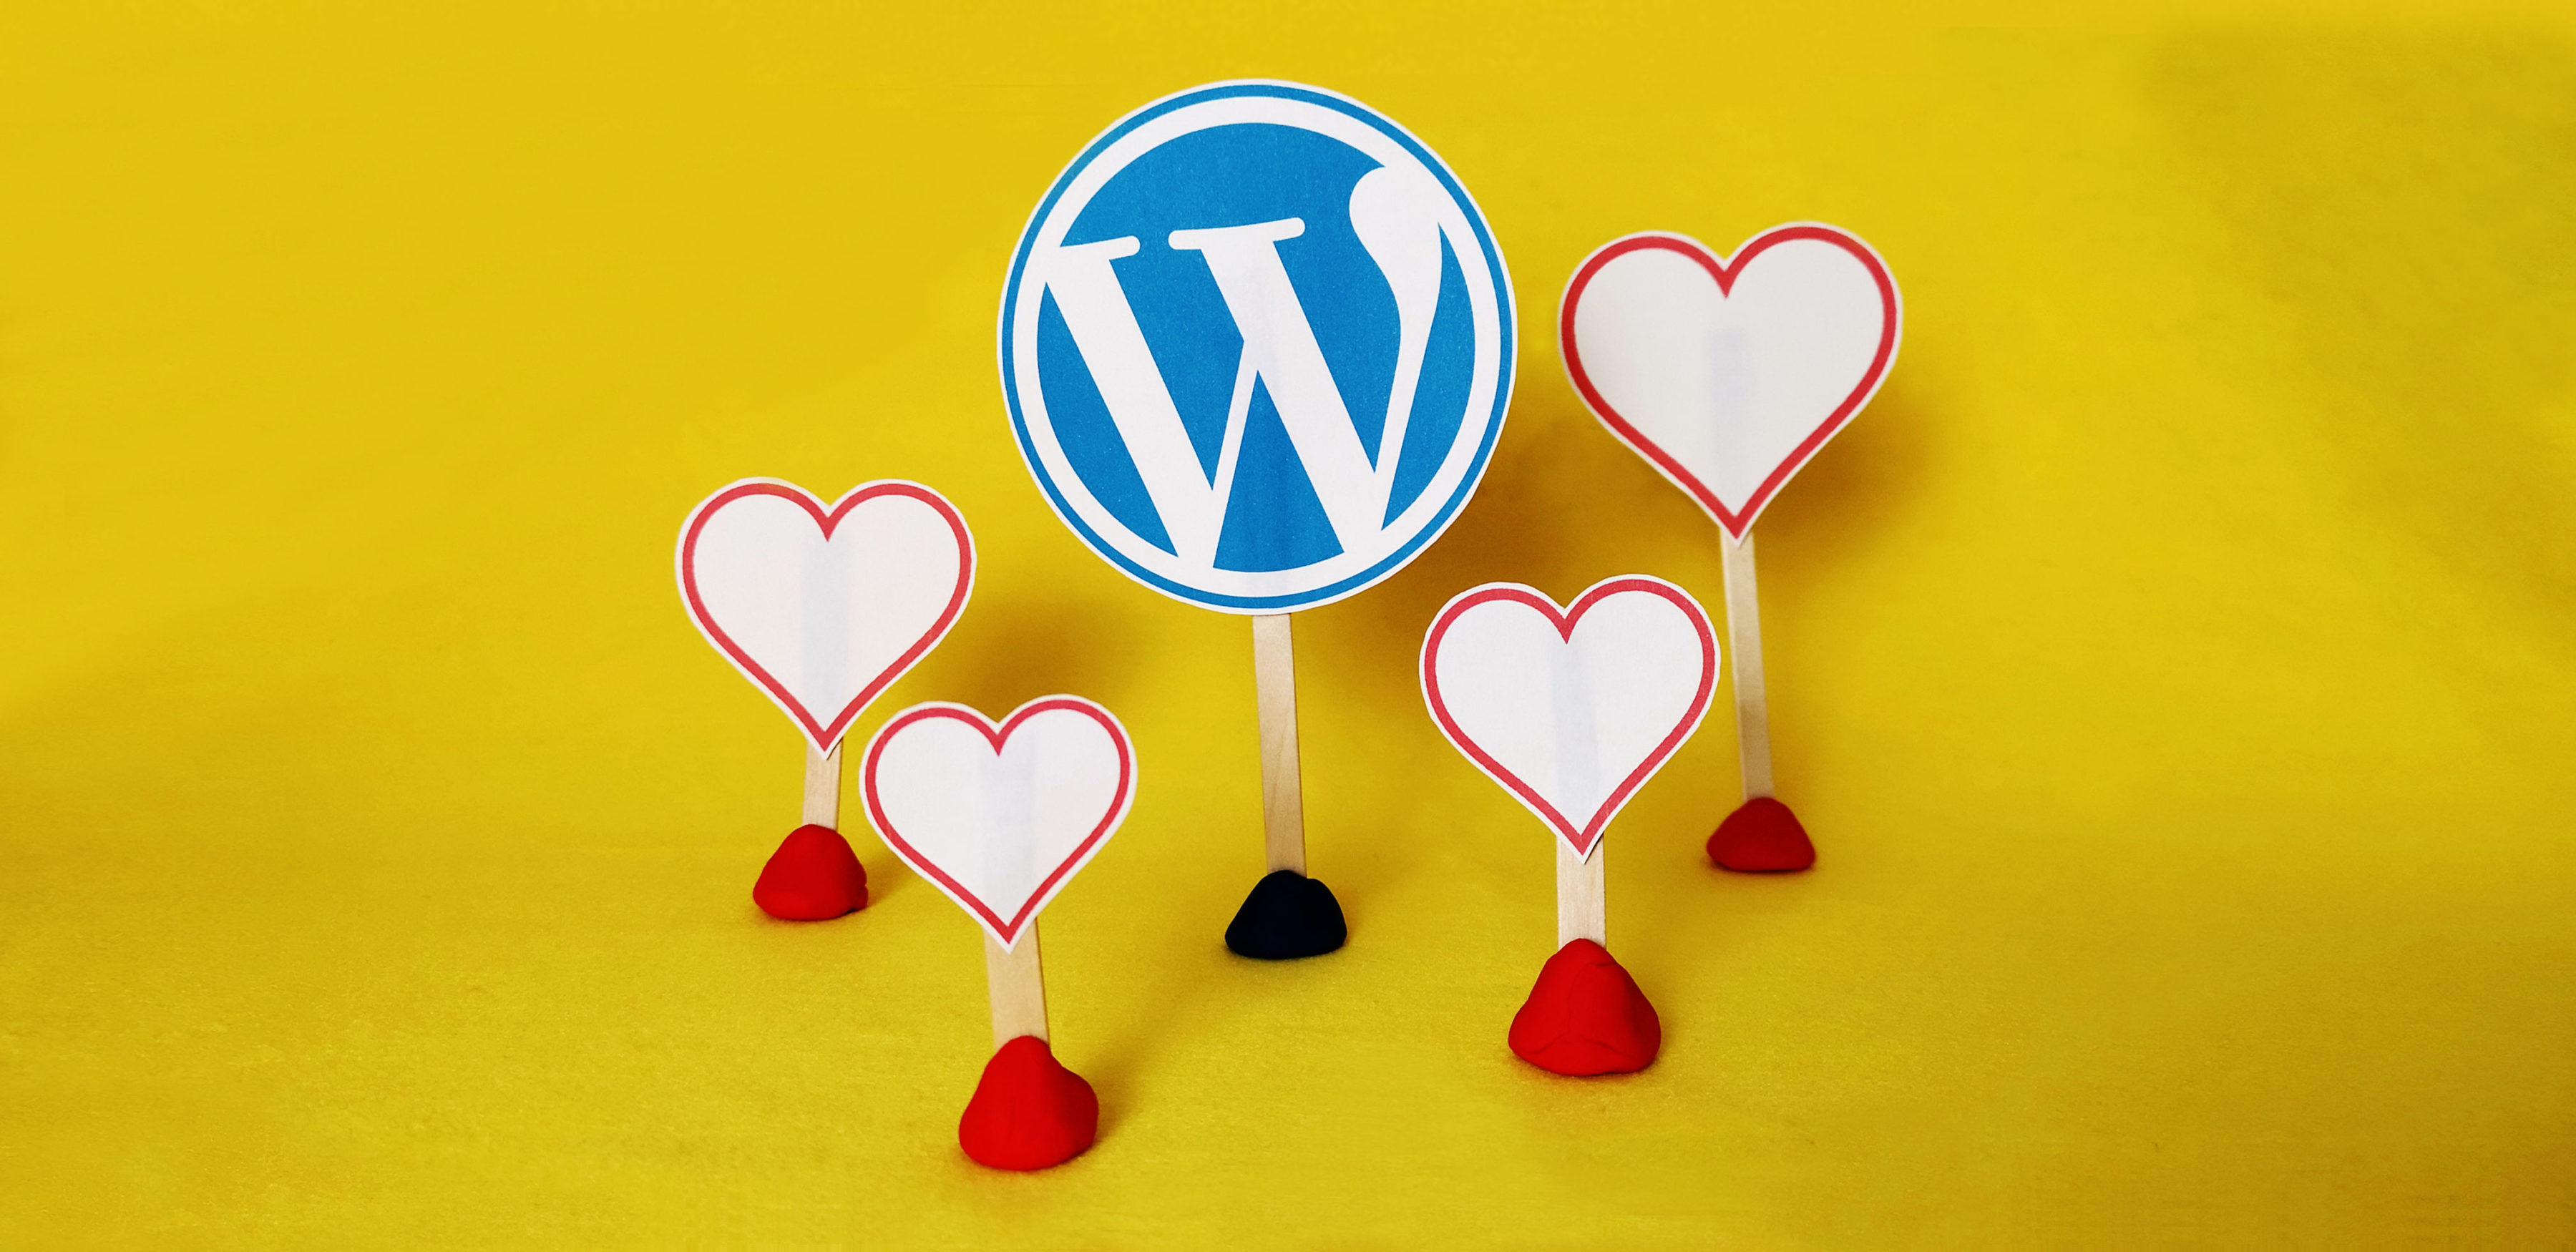 Wordpress logo with hearts around it